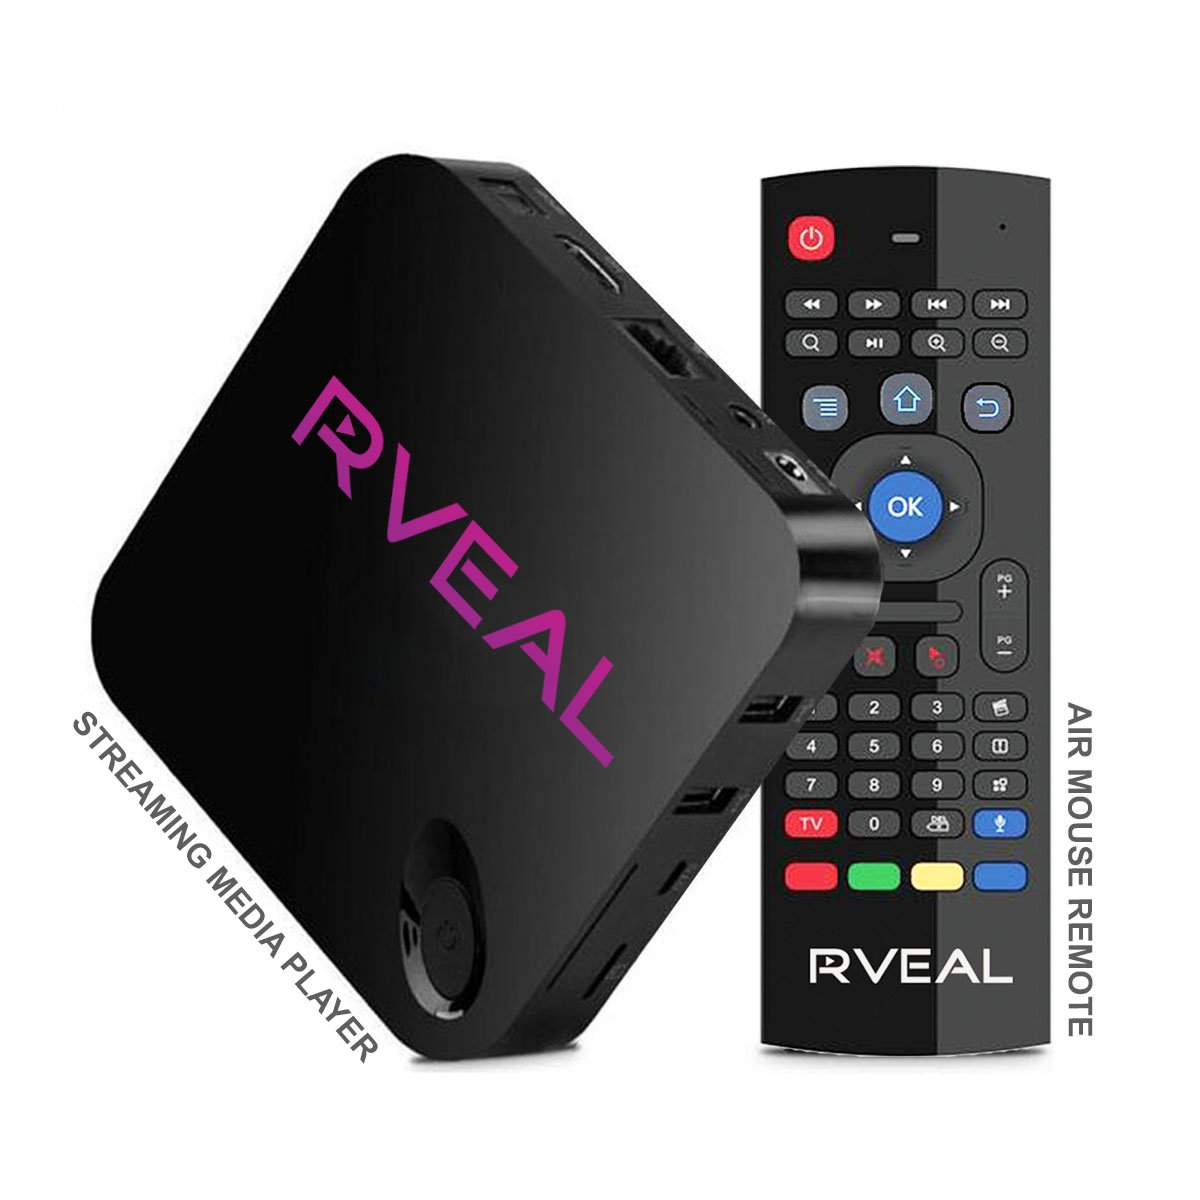 Rveal Streaming Media Player & Air Mouse Remote